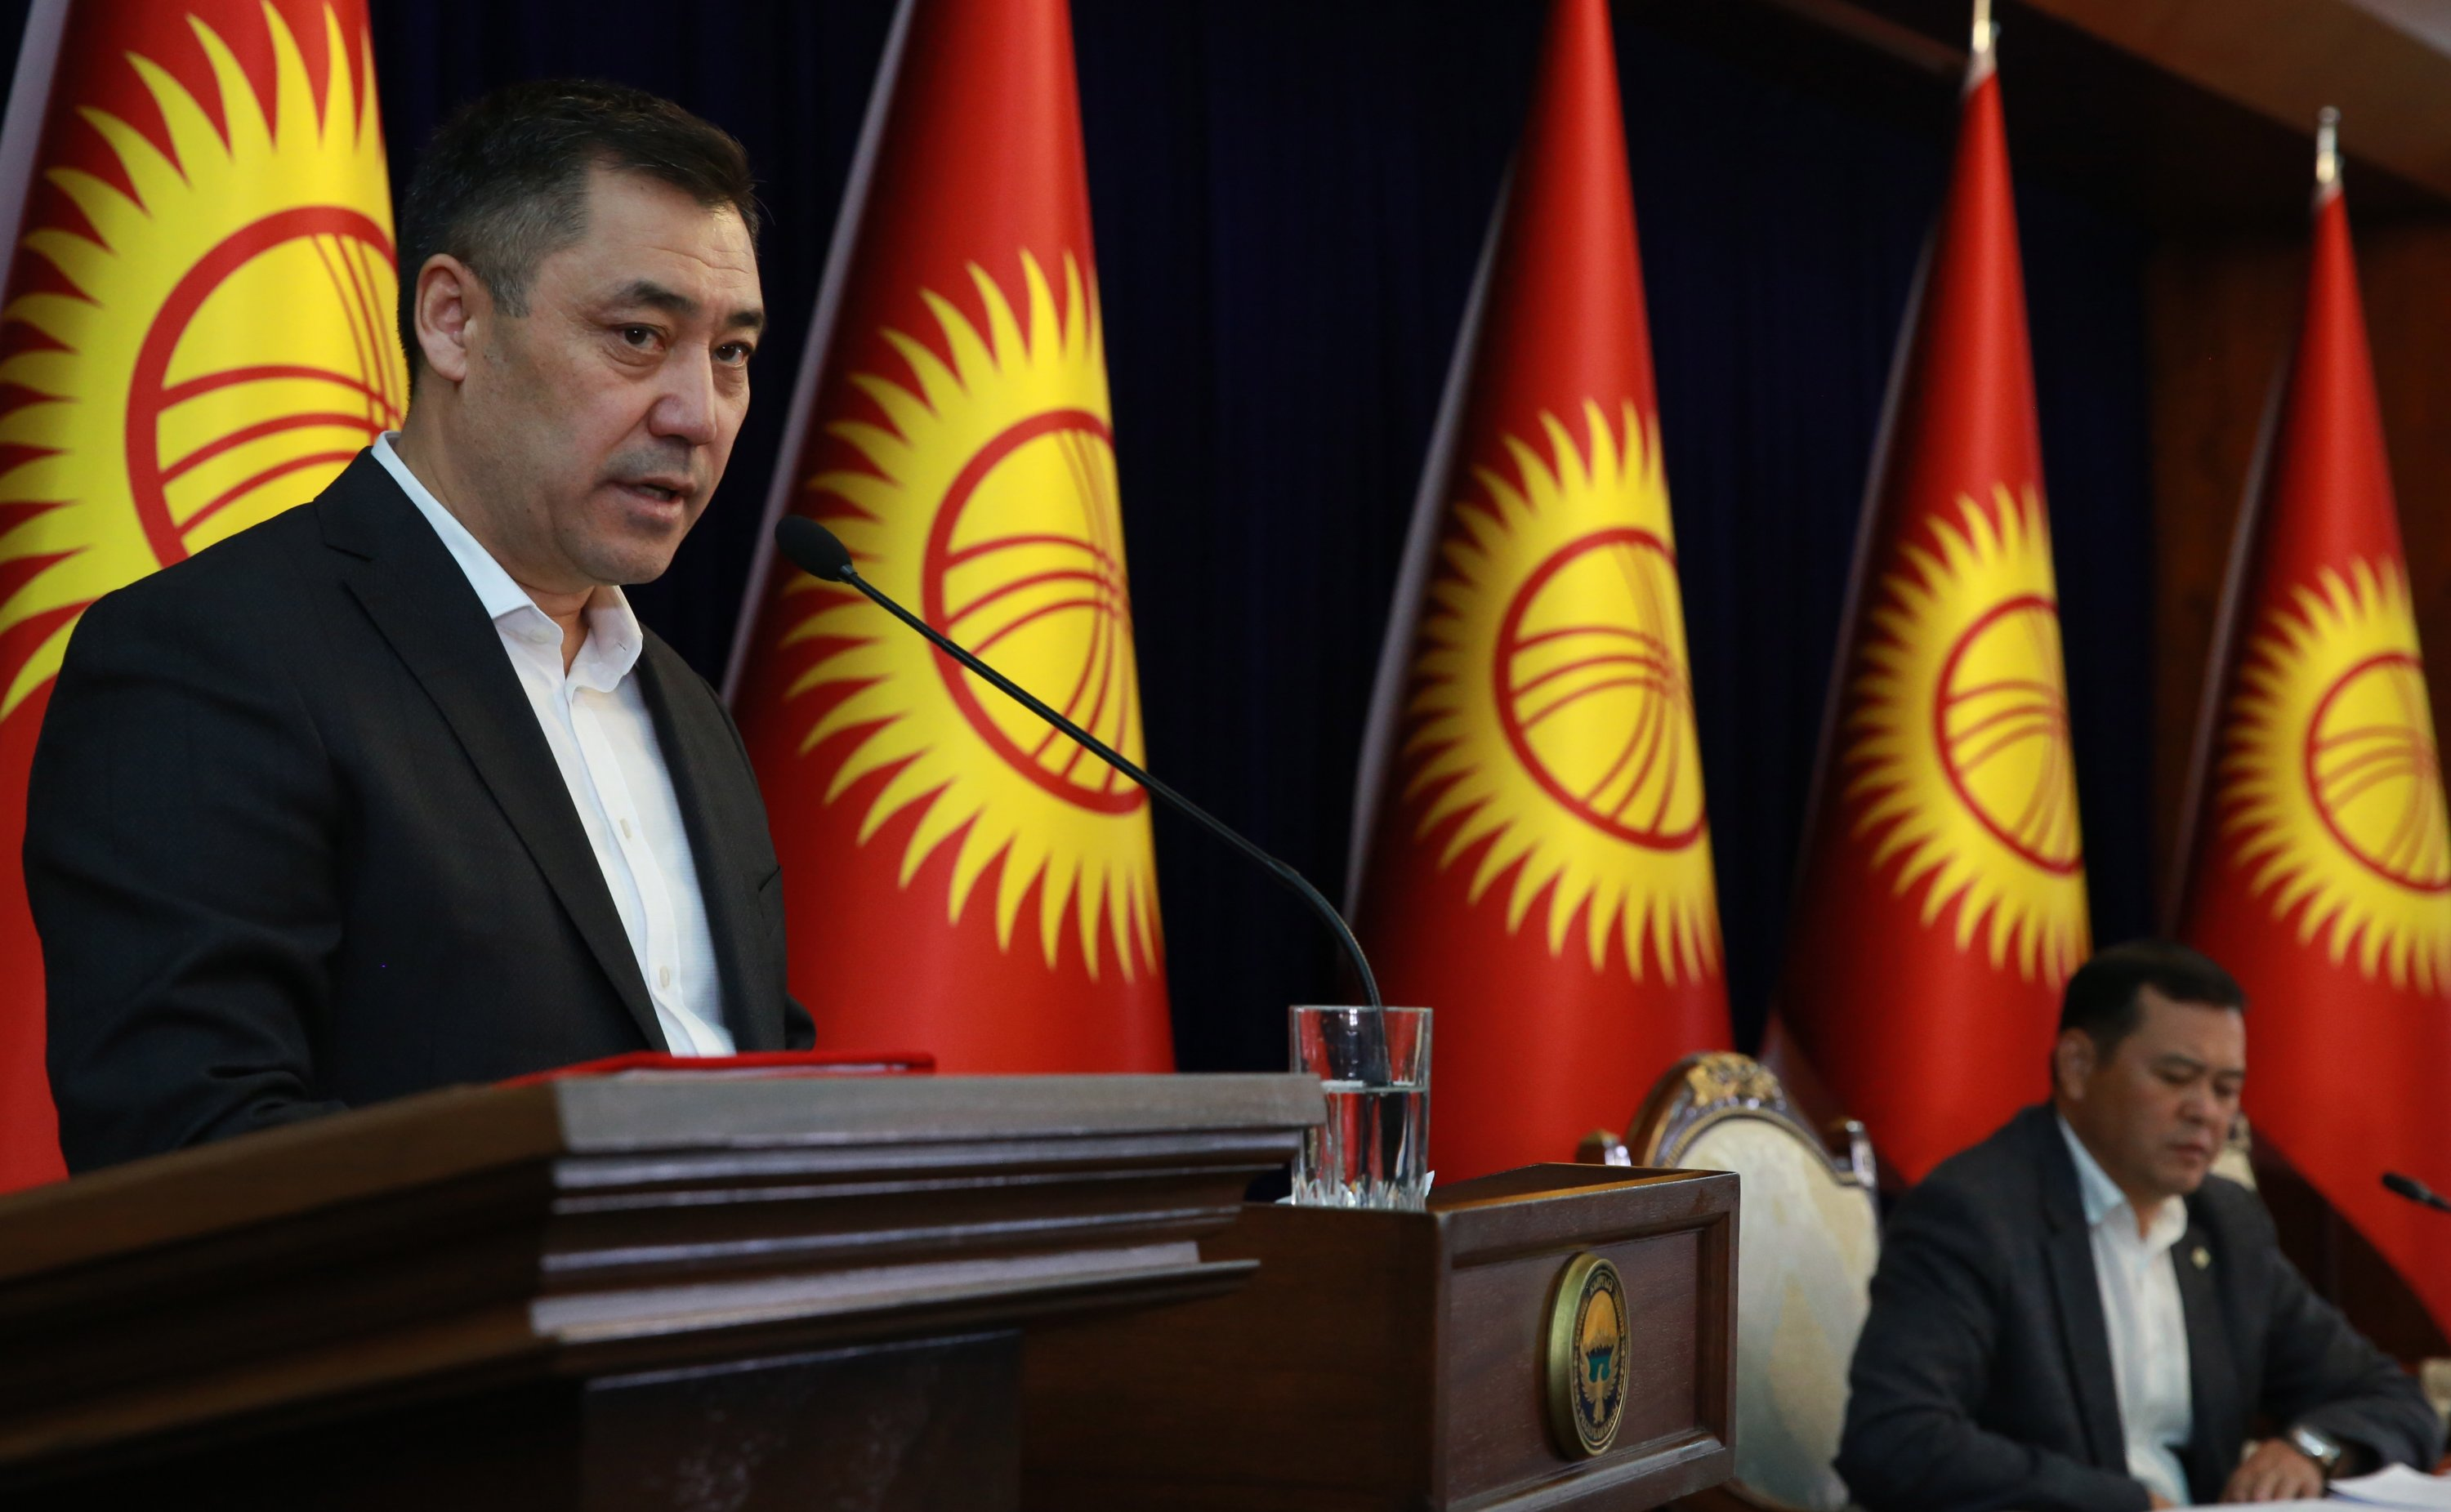 Kyrgyzstan to hold presidential elections before Jan. 10